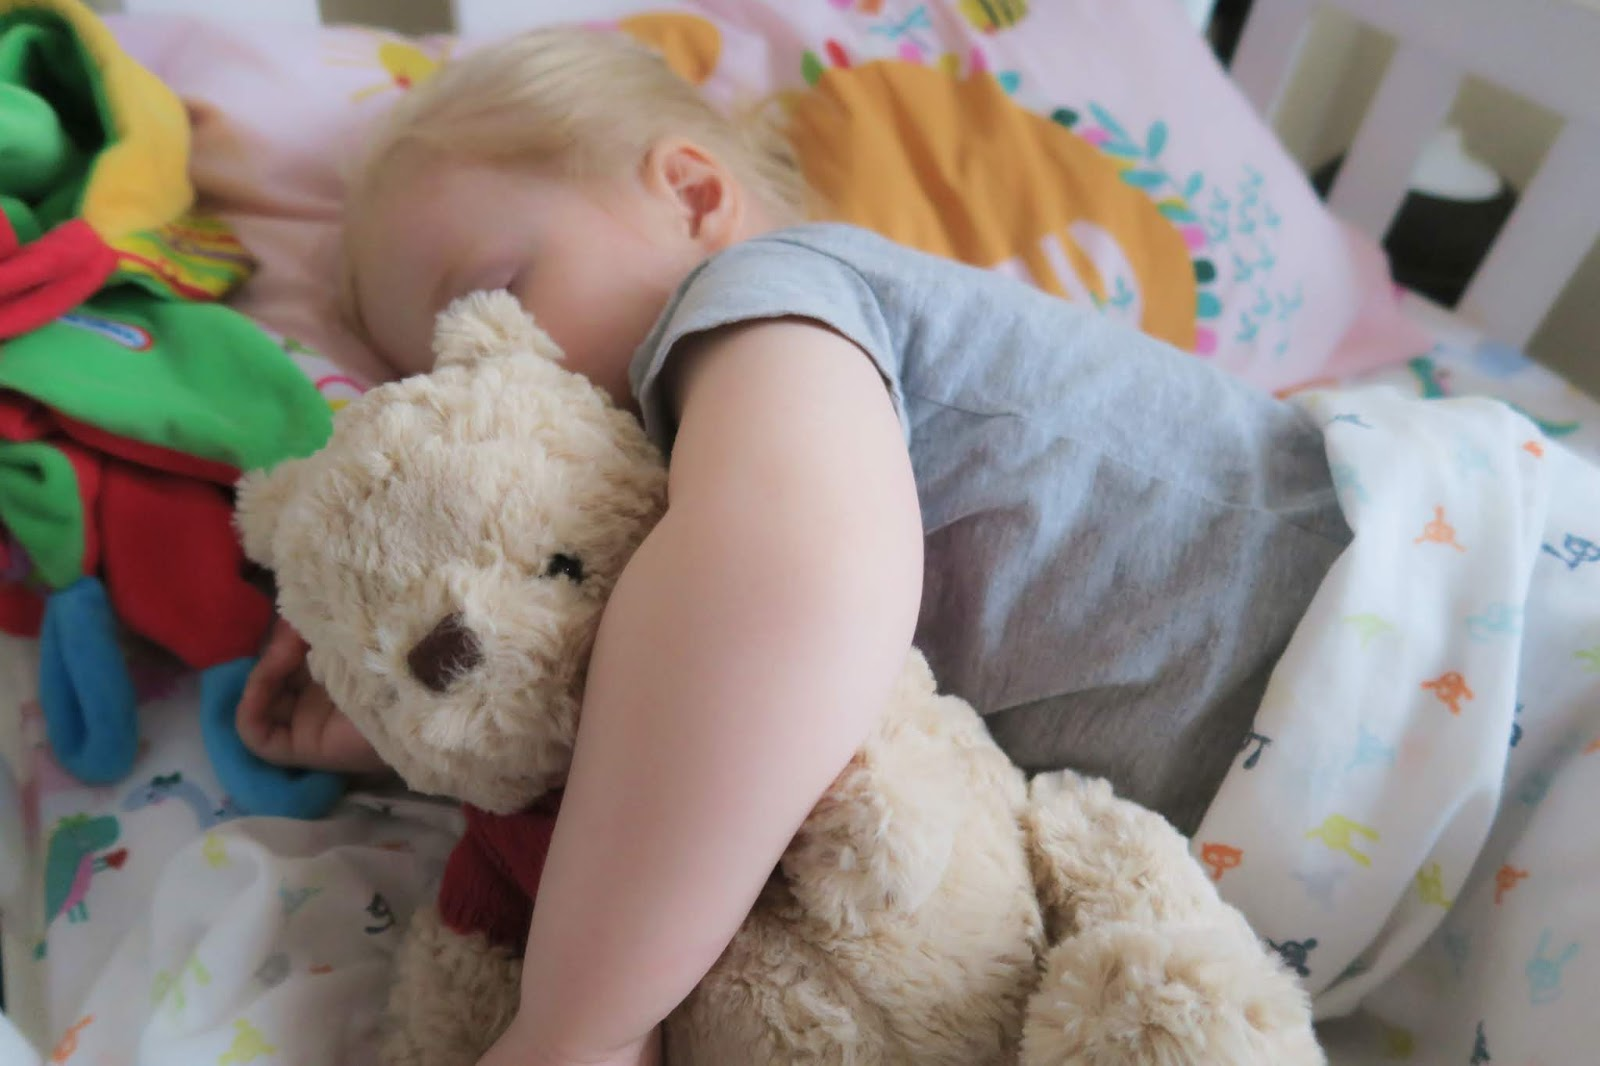 Elise asleep in bed and cuddling the winnie the pooh plush